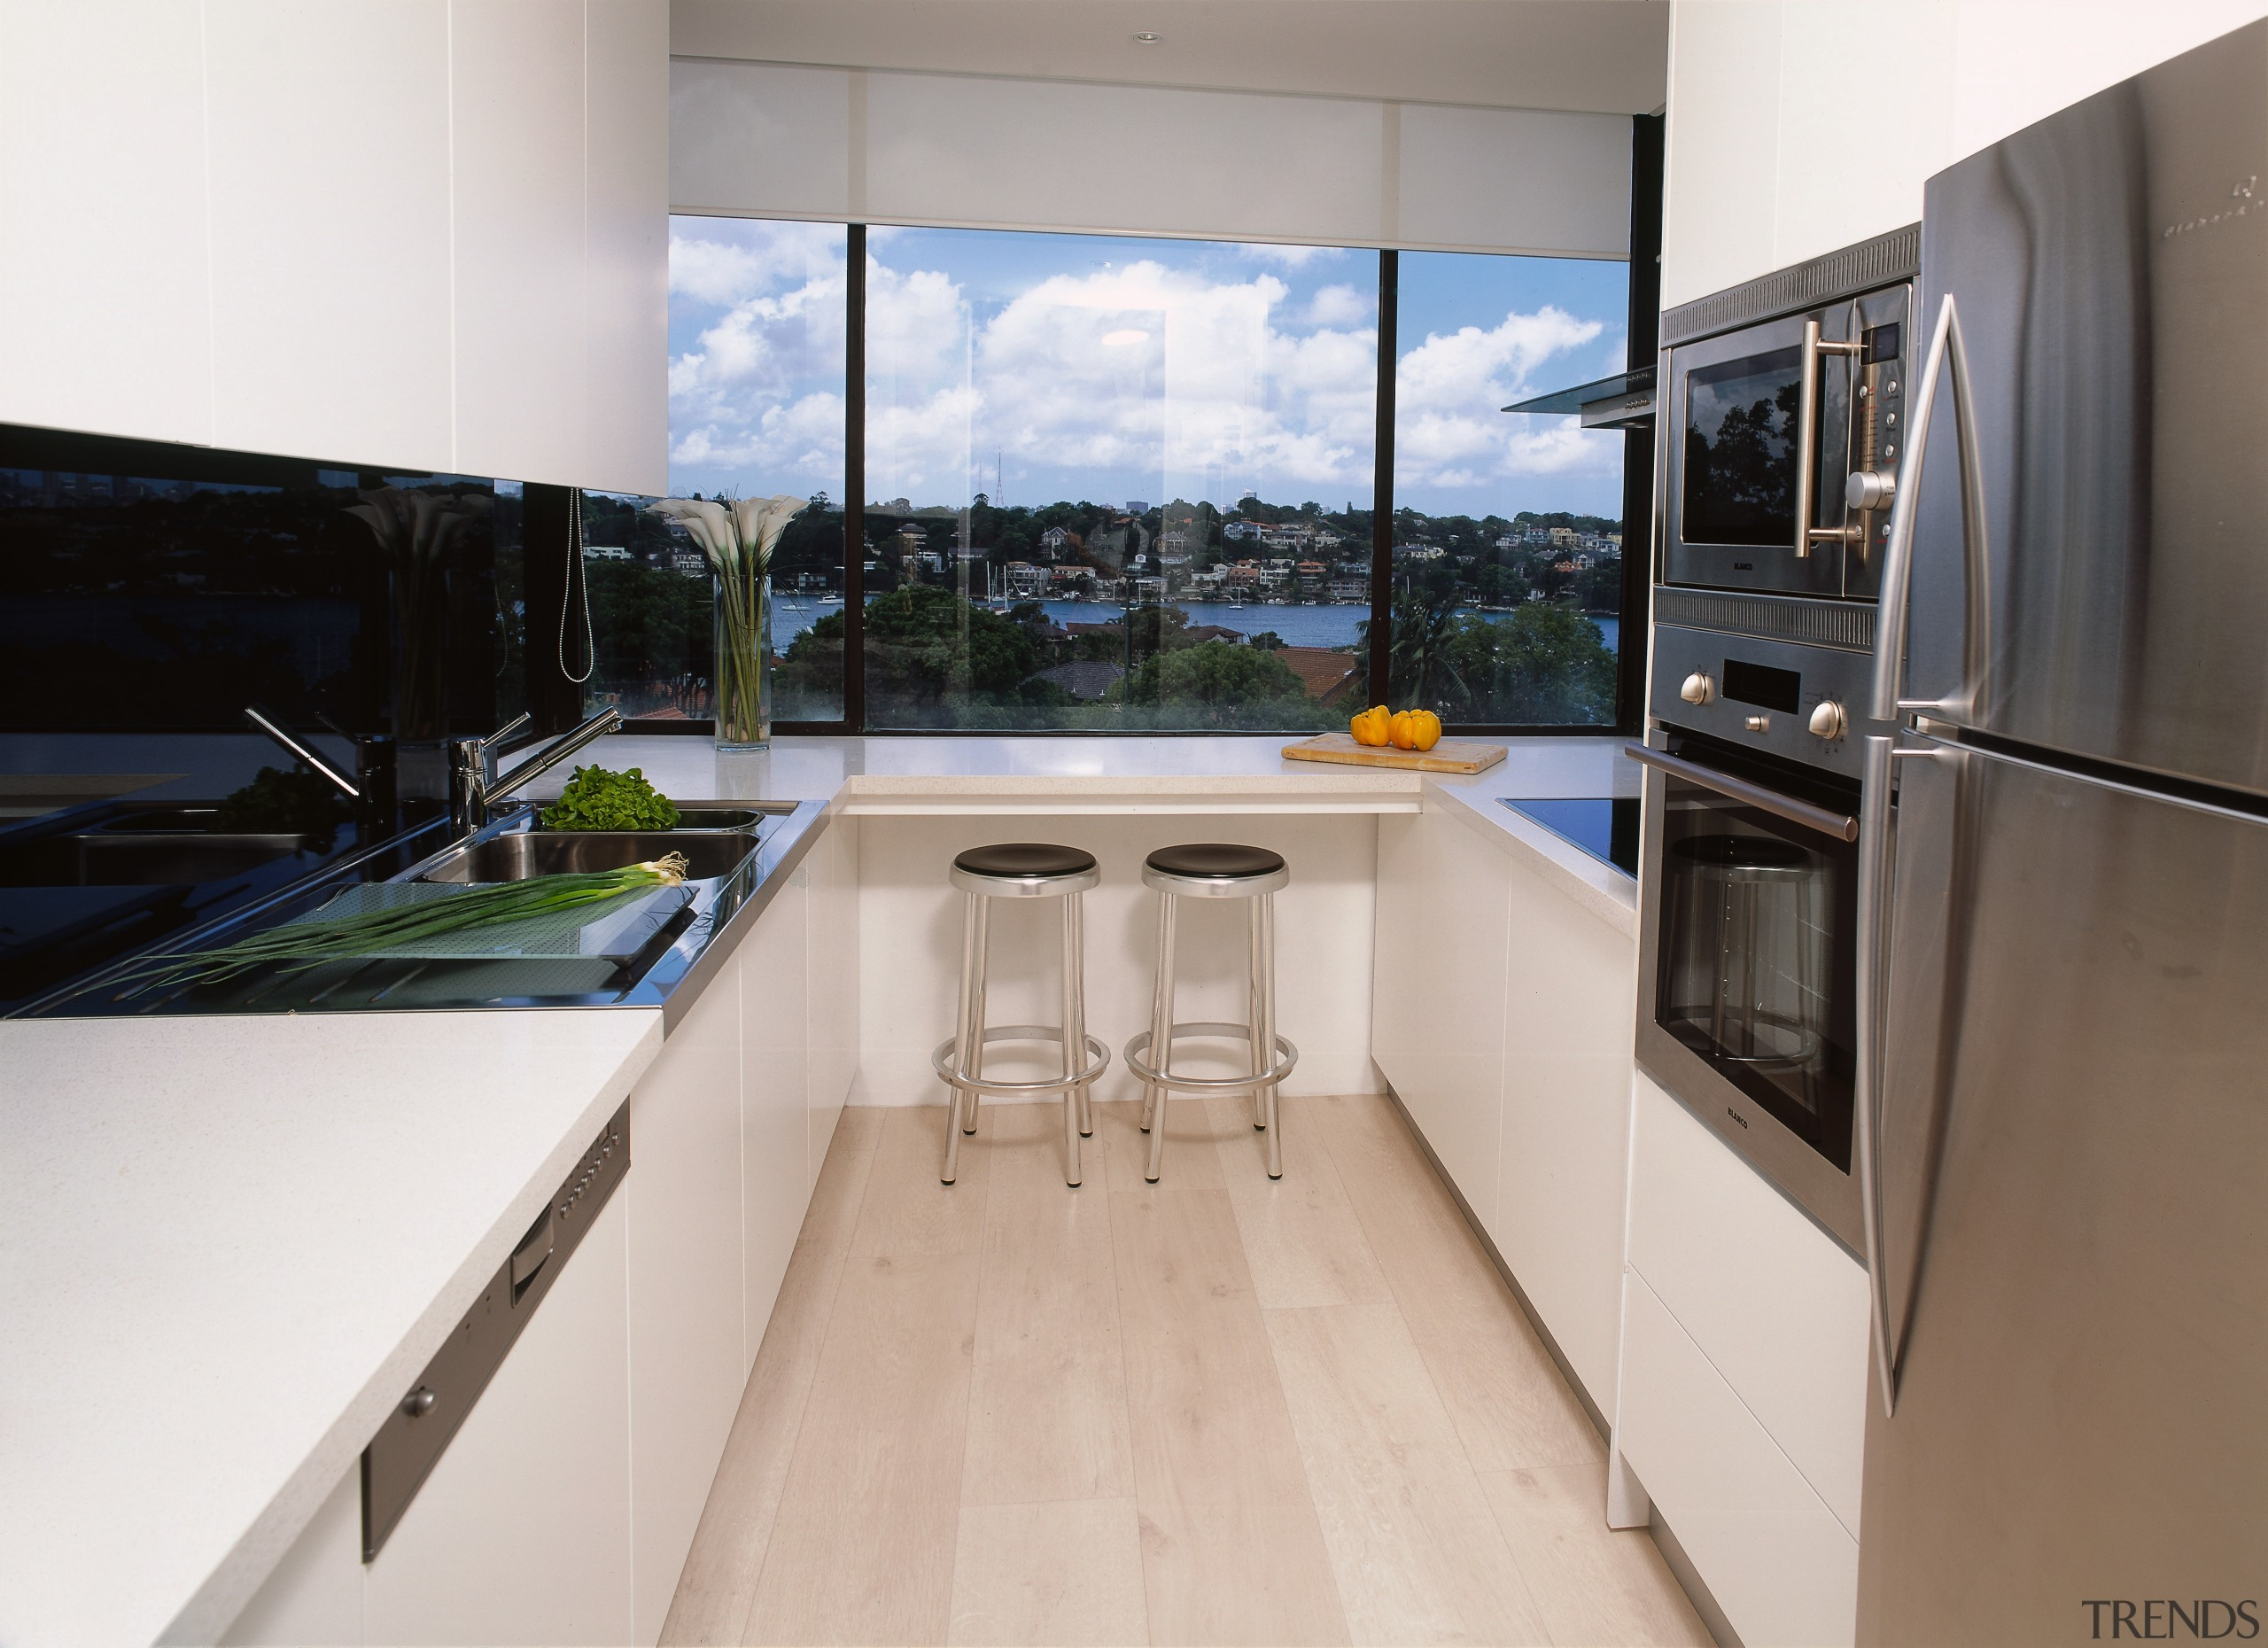 view of  the kitchen area and stainless countertop, interior design, kitchen, property, real estate, white